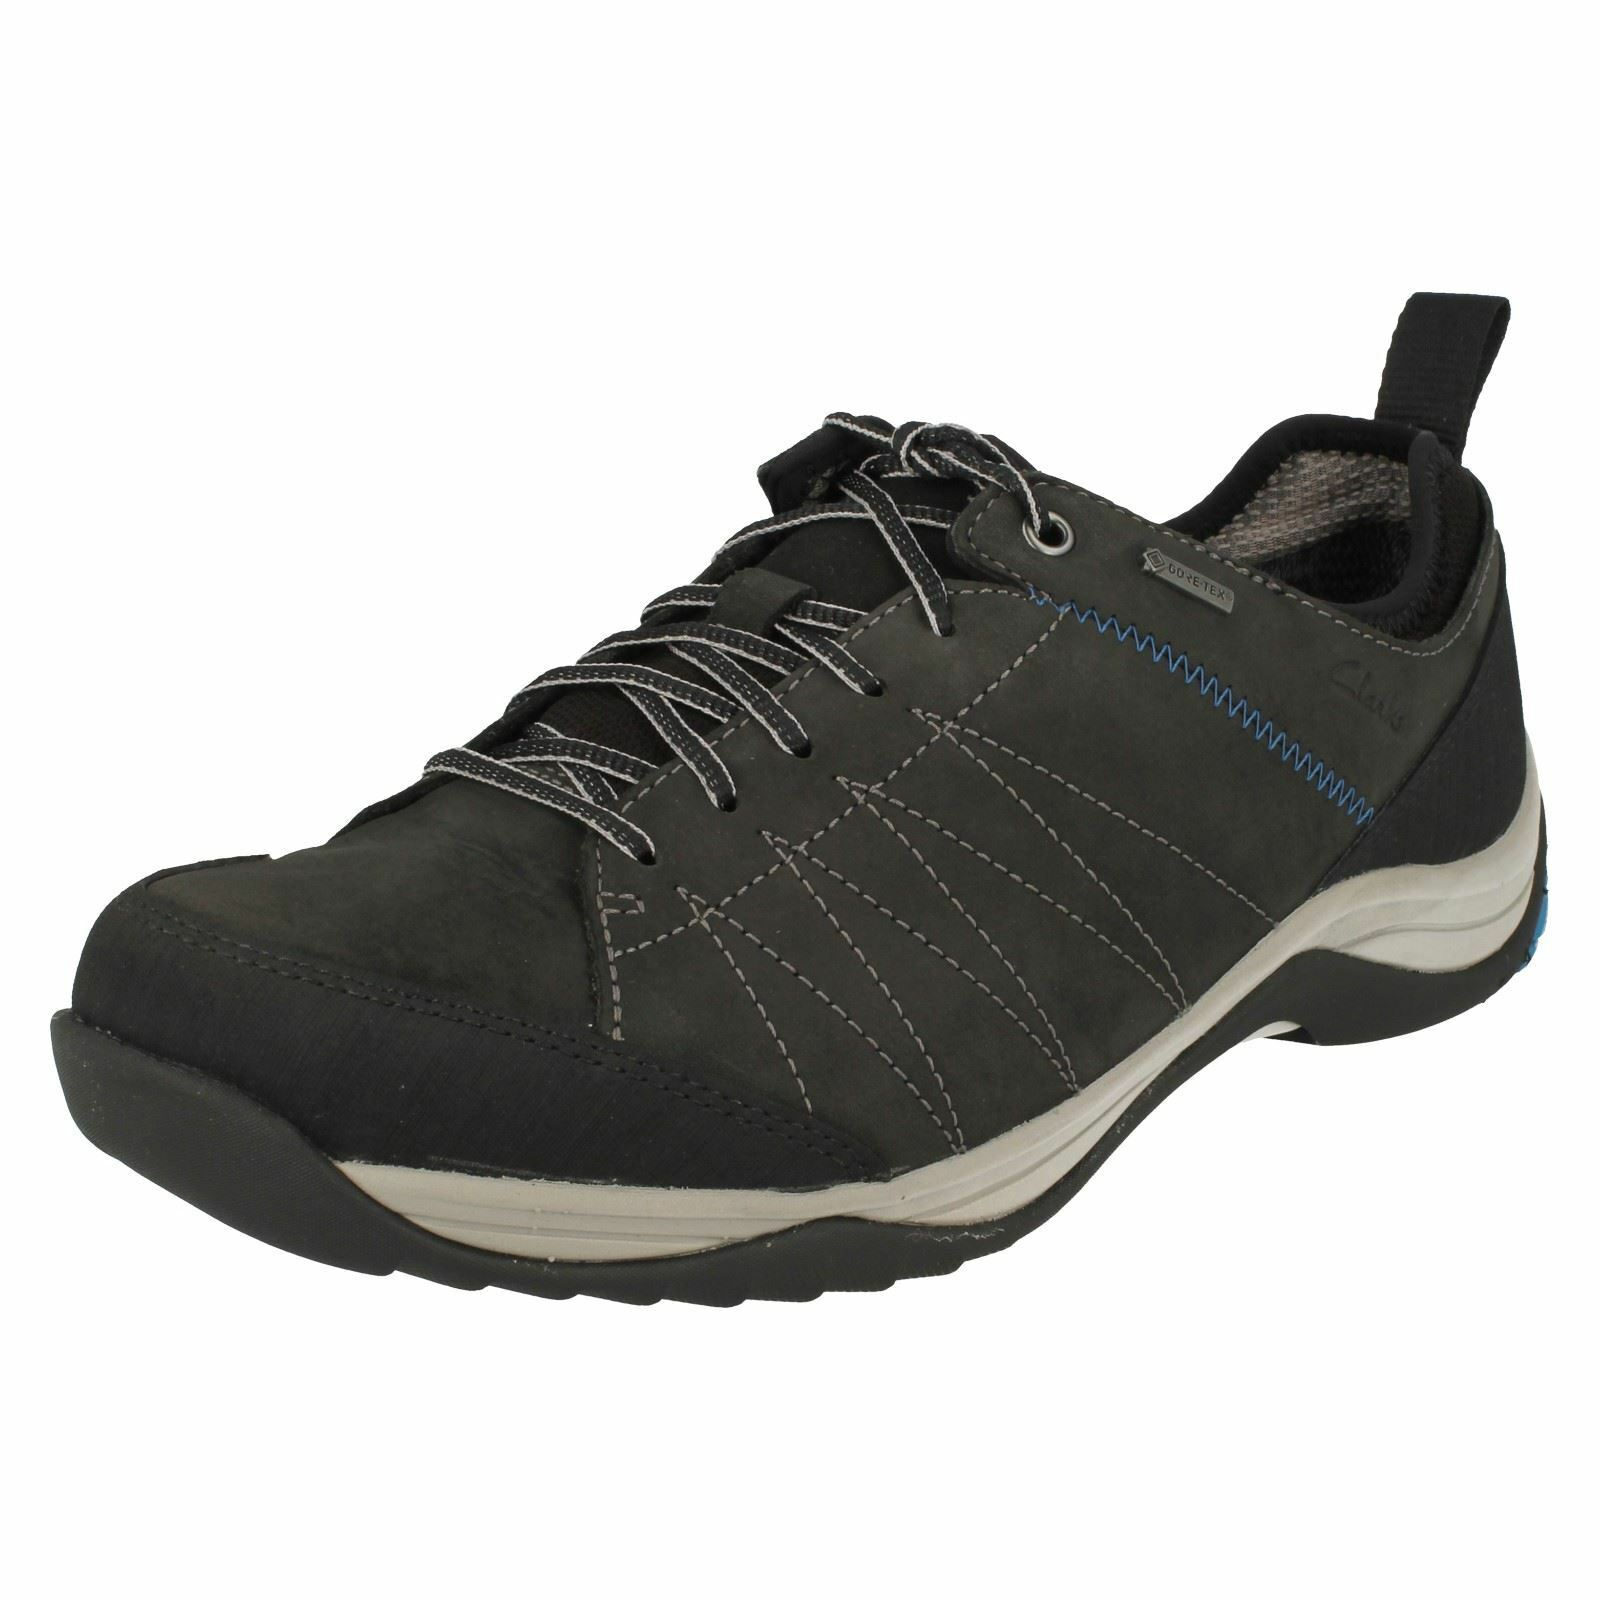 Herren Clarks Casual Lace Up Schuhes Baystonelo Baystonelo Schuhes GTX c09ef7